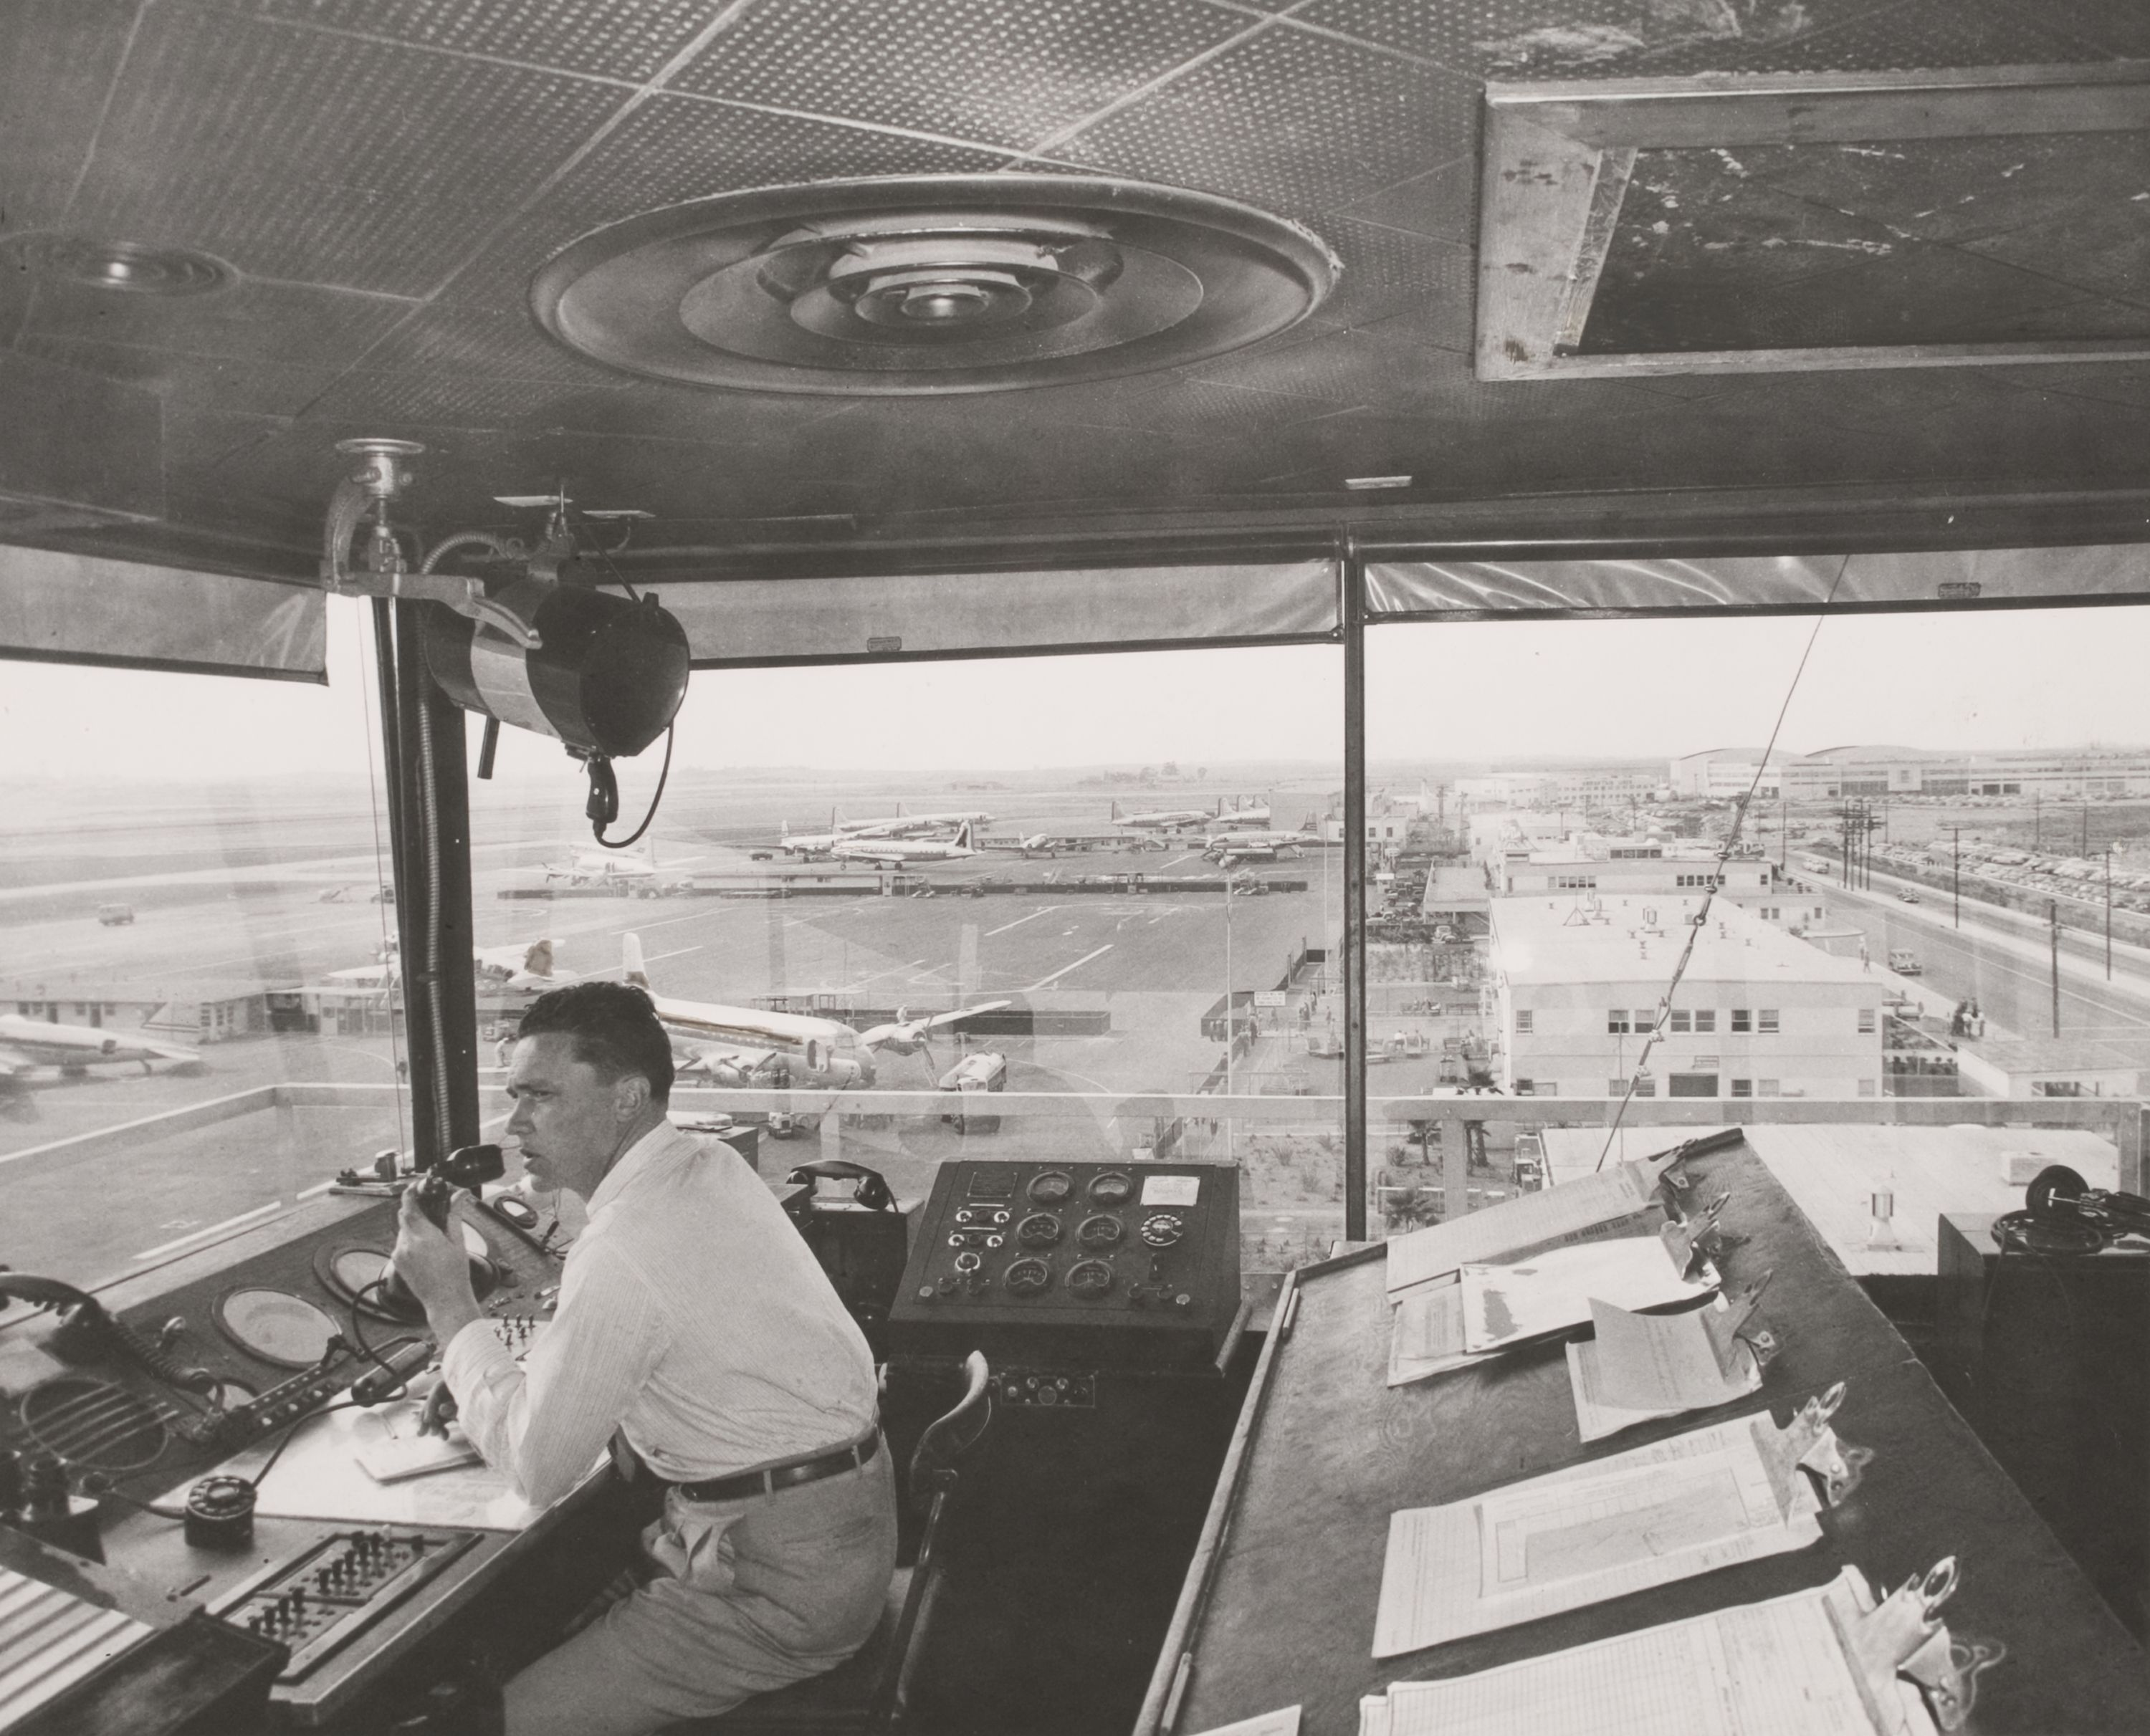 Throwback Thursday to a day in the LAX Control Tower